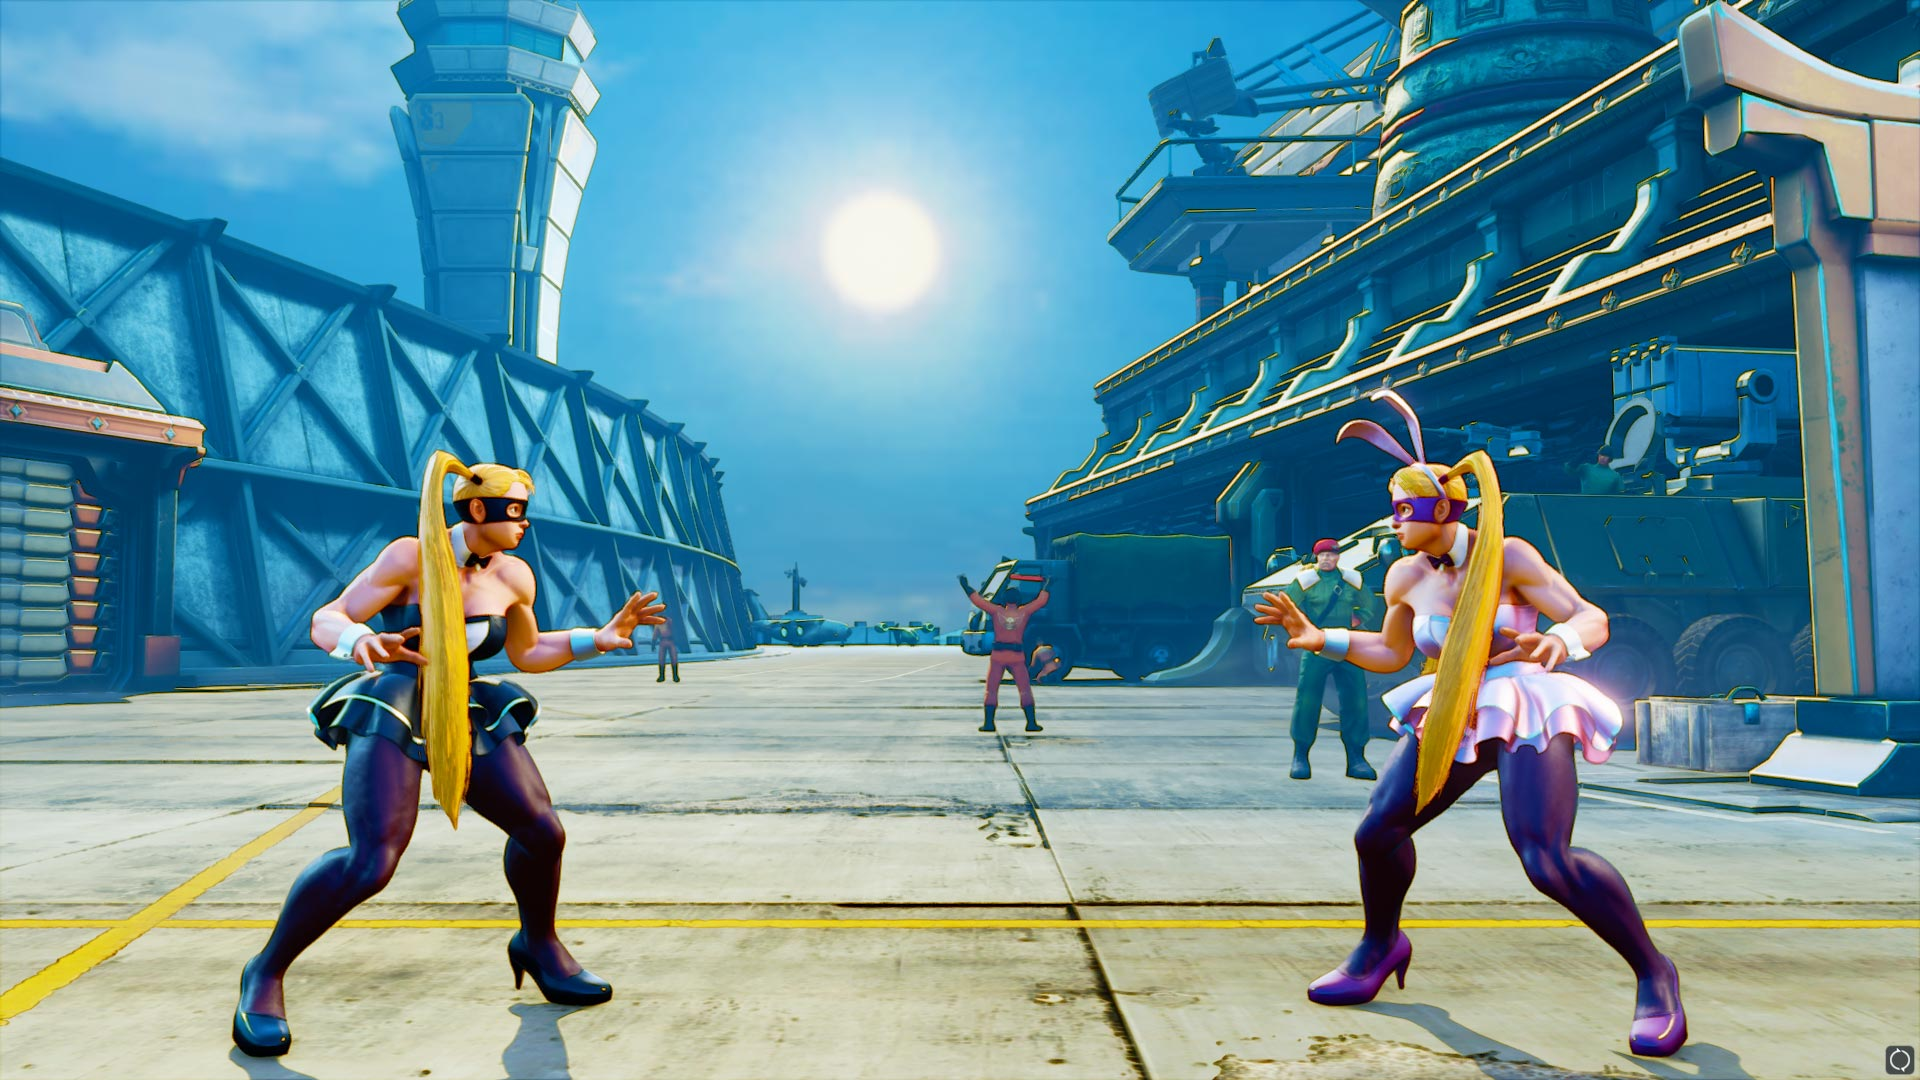 Professional costume colors for Street Fighter 5 4 out of 21 image gallery